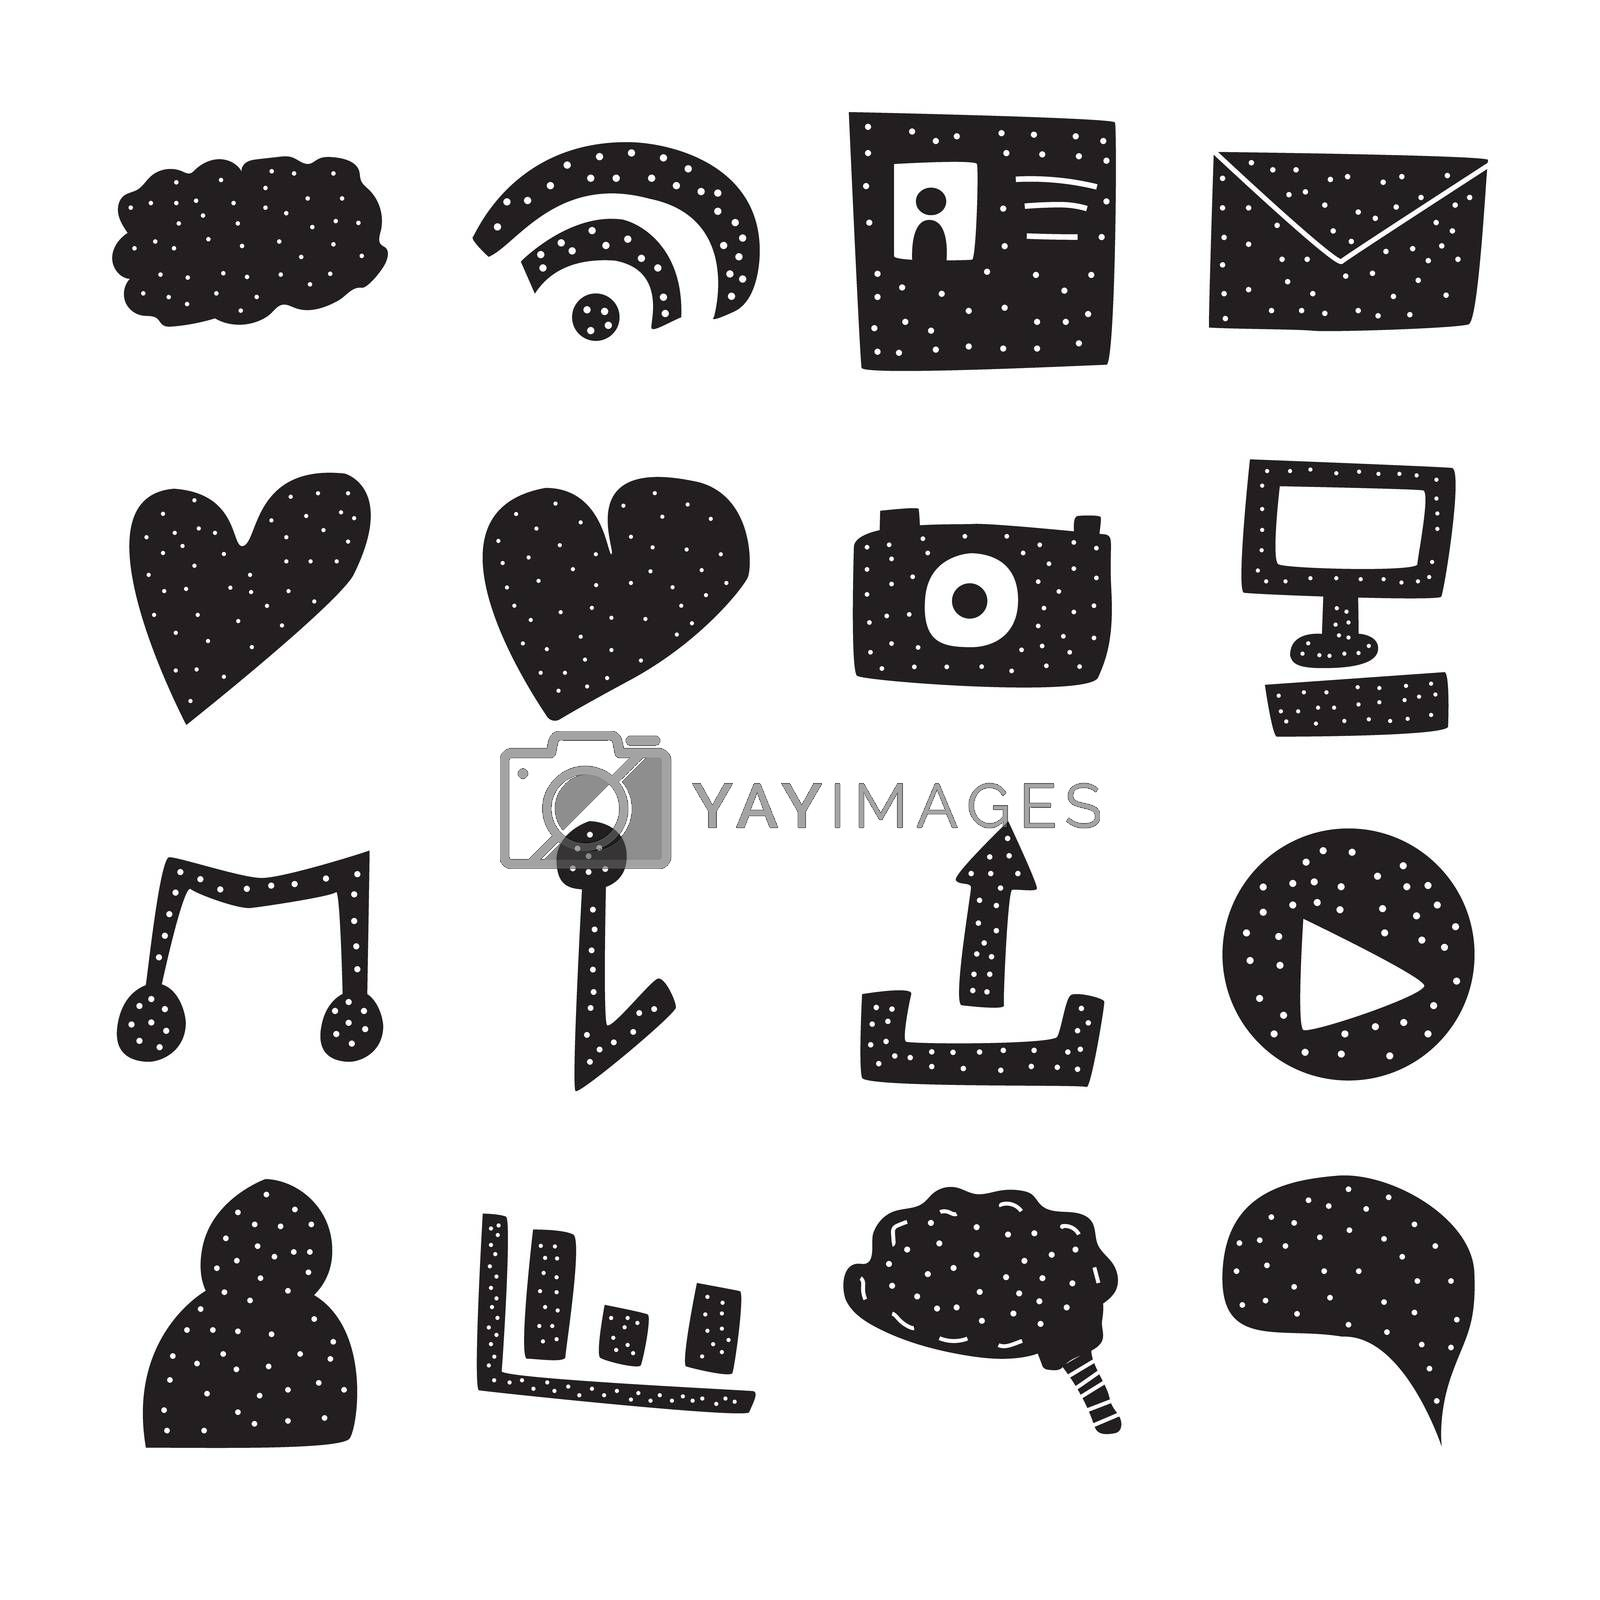 Vector icon set for internet and communication on white background